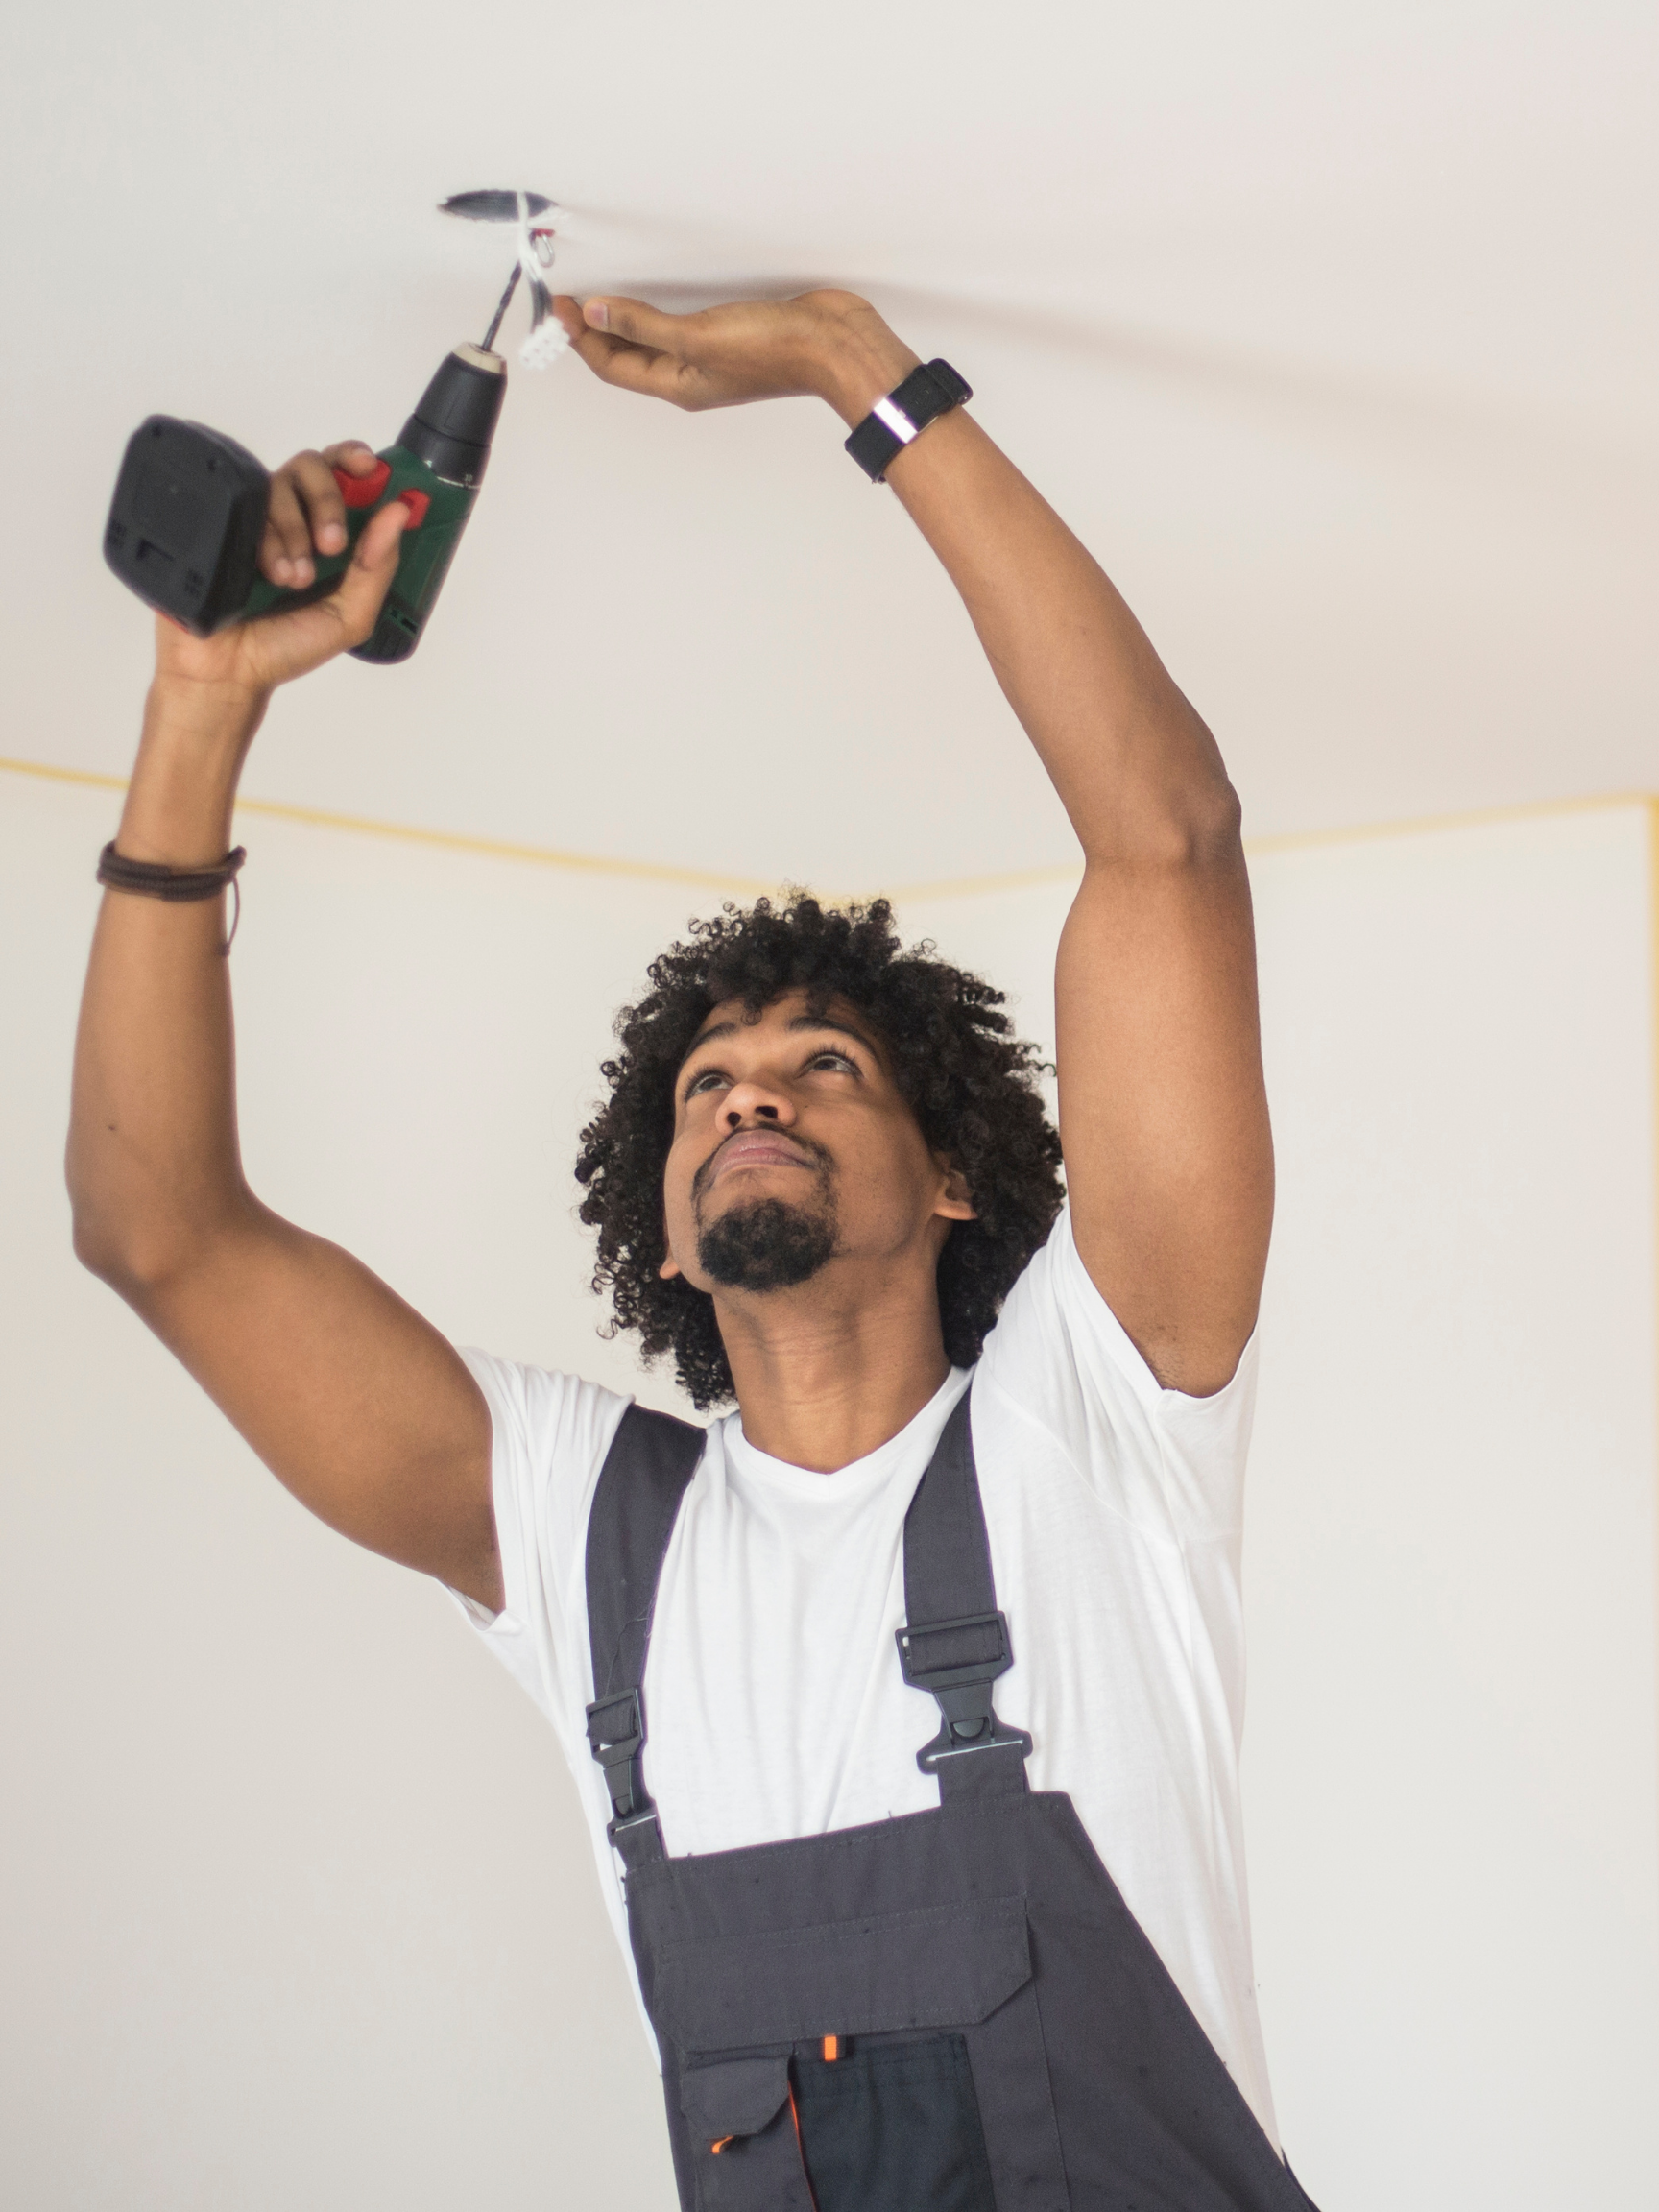 A man waring overalls and a white t-shirt using a drill to work on the electrical wiring in the ceiling